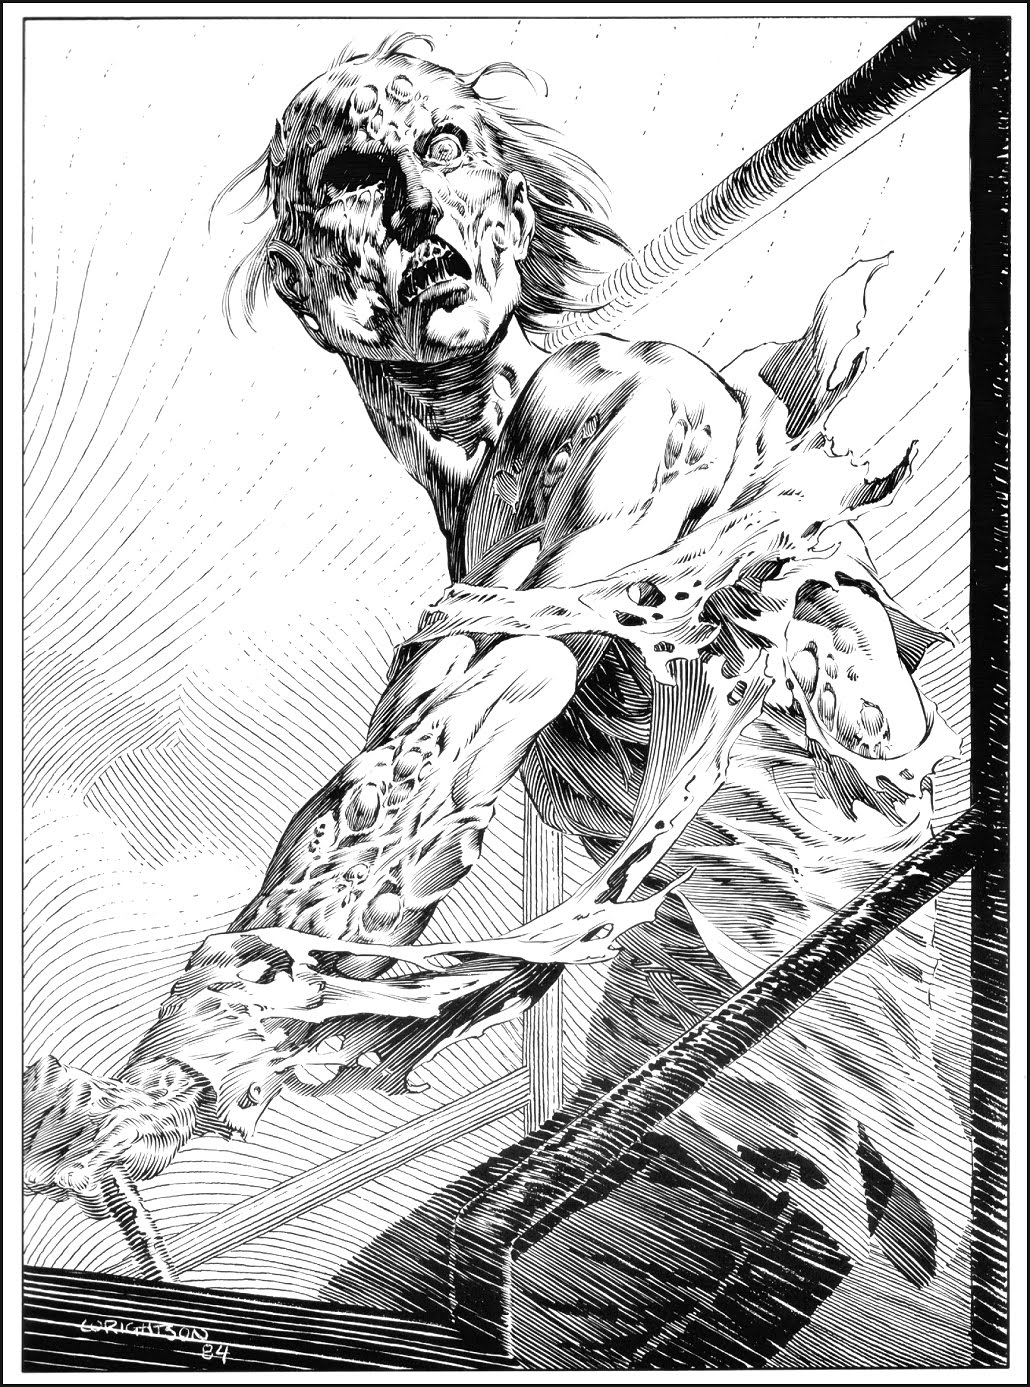 1030x1387 Berni Wrightson Illustrating Stephen King's Masterpiece The Stand